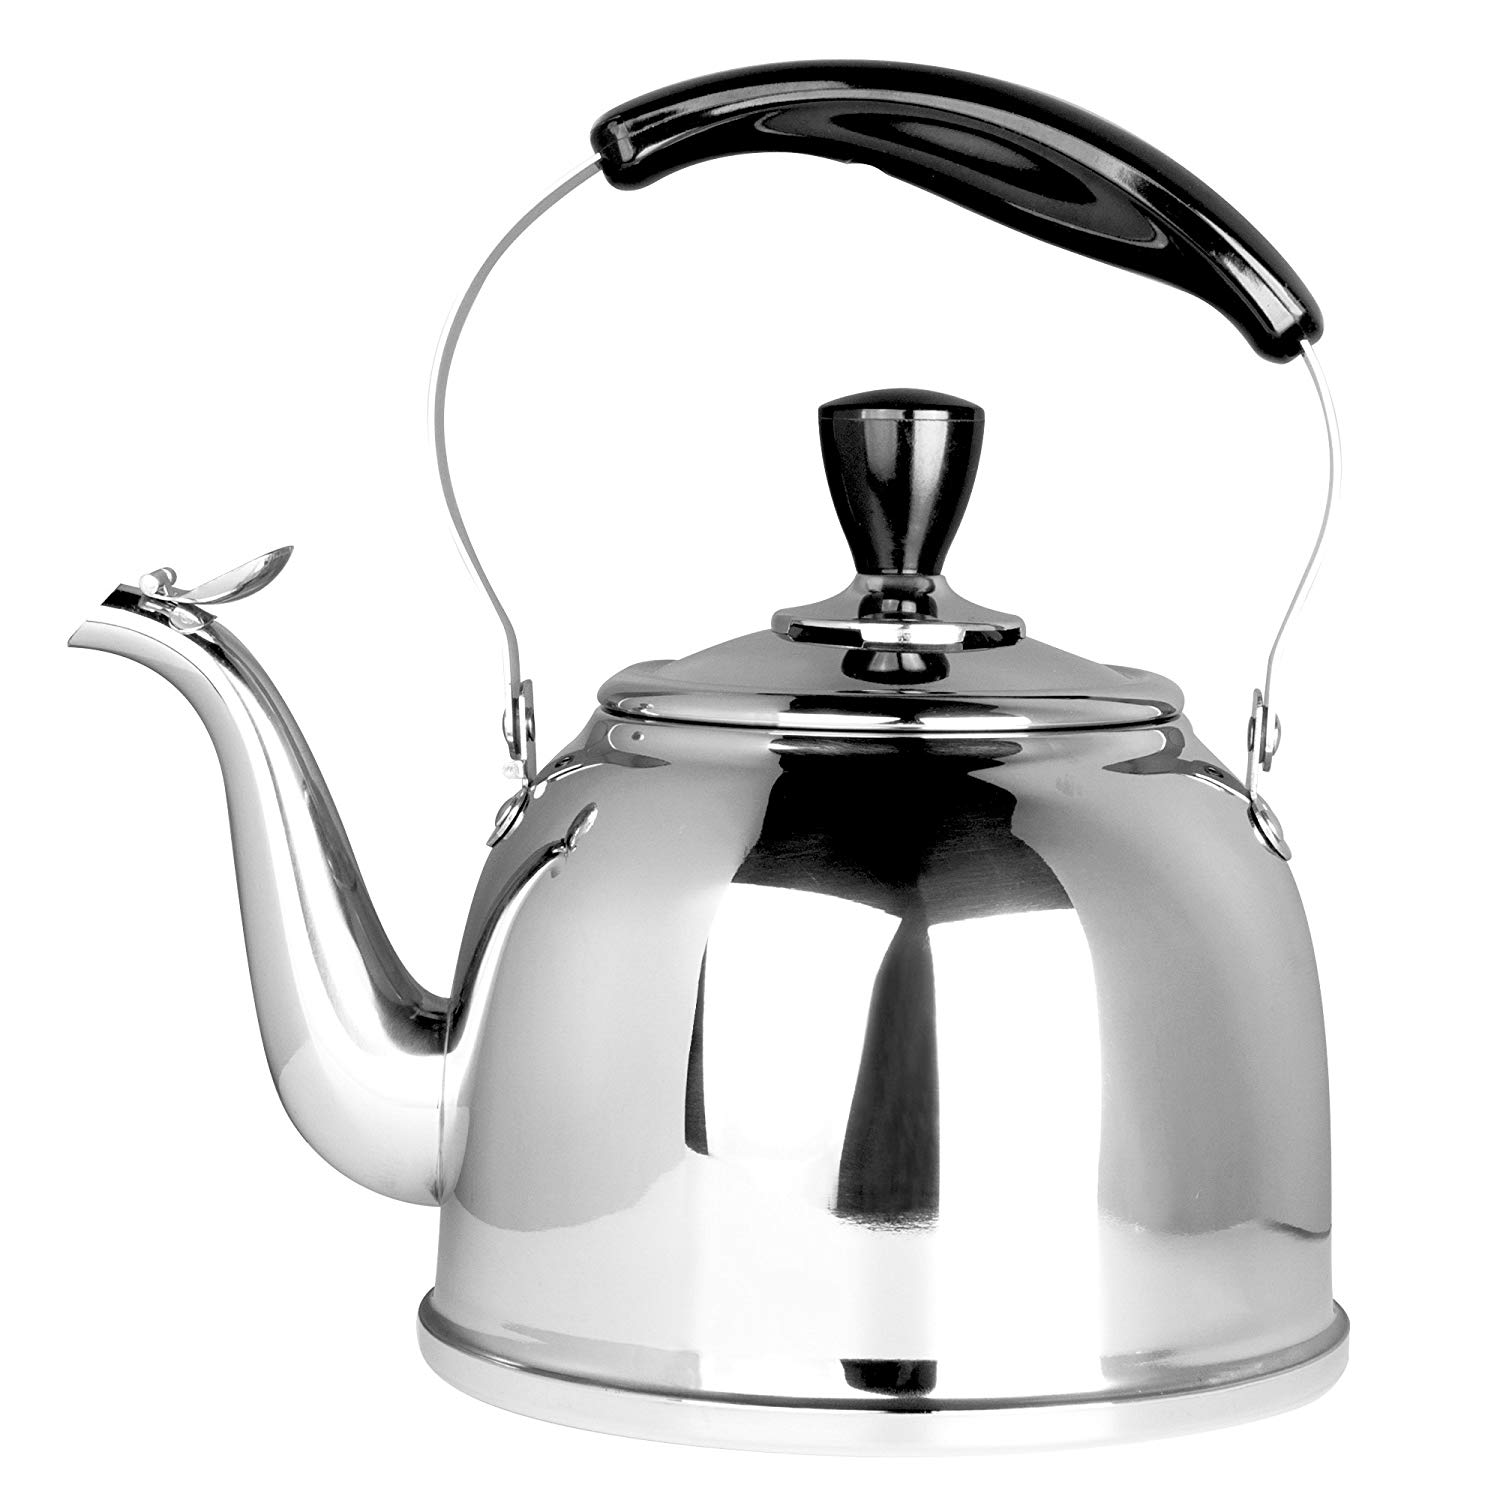 Stainless Steel Whistling Tea Kettle Stove Top Teapot P Thin Base Lightweight Fast Boiling 2L